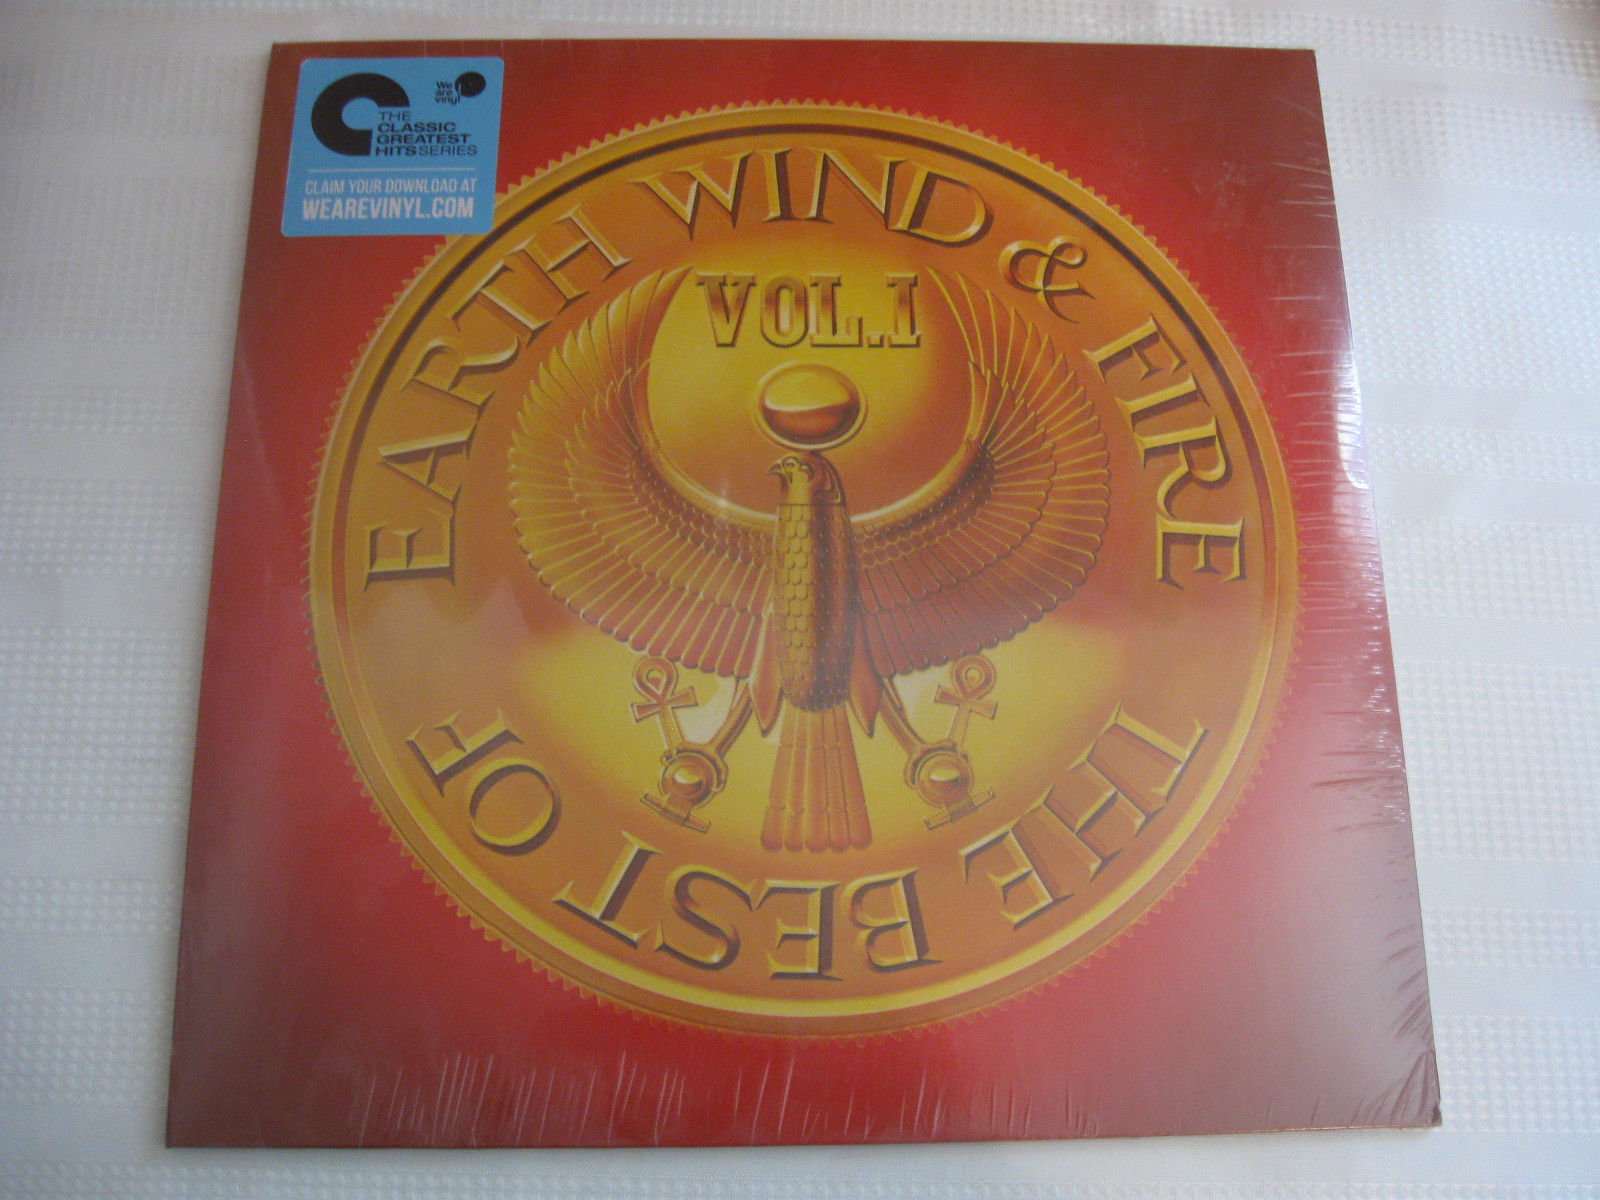 The Best Of Earth Wind & Fire Vol 1 Sony Columbia Stereo Vinyl Record LP SEALED